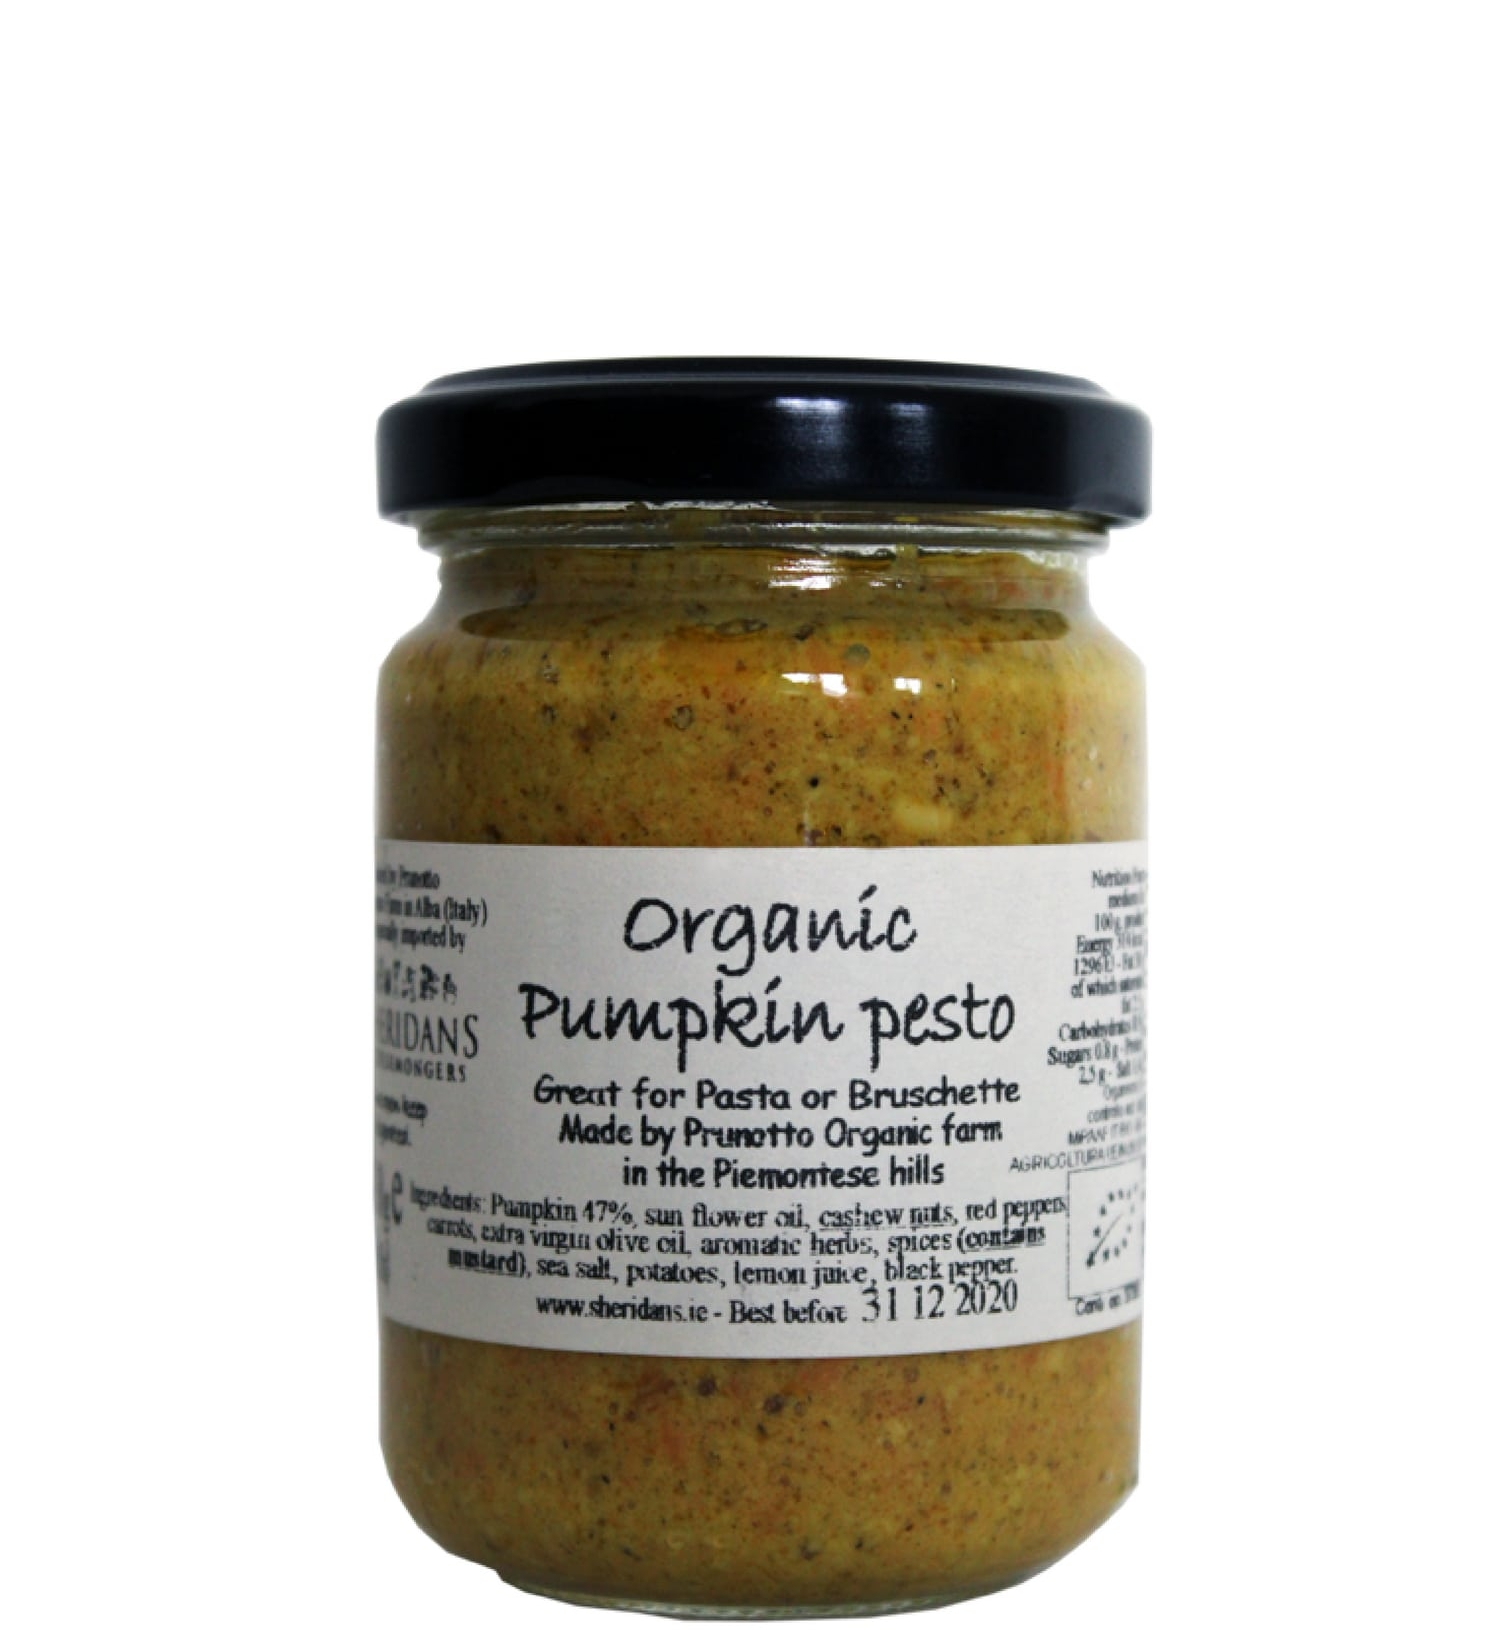 Organic Pumpkin Pesto made by Prunotto in the Piemontese hills in Italy.